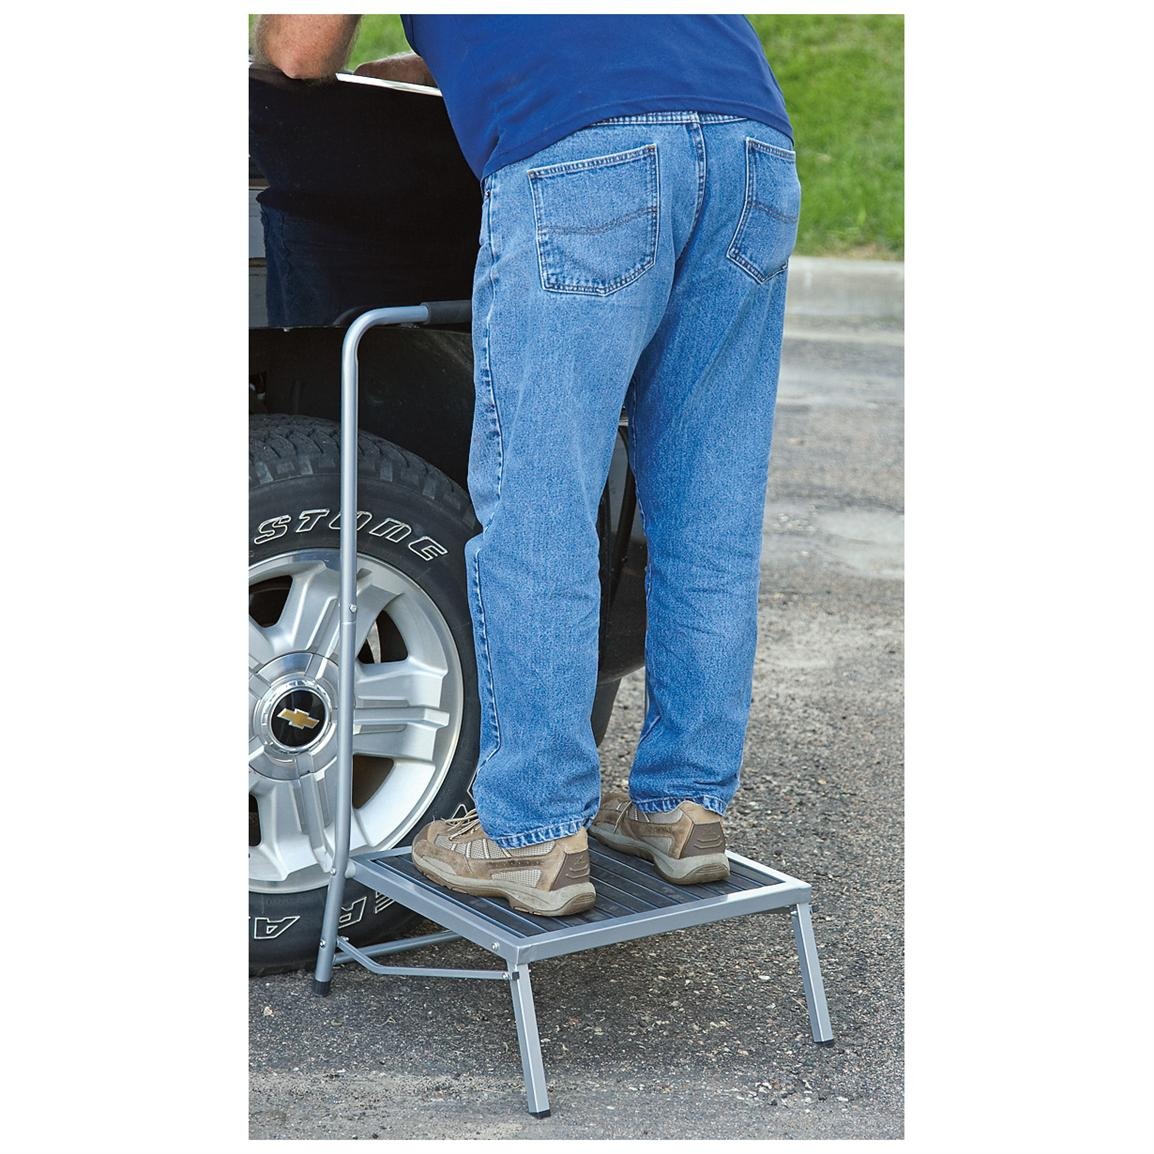 Sierra Tools™ Extra-wide Folding Work Stool